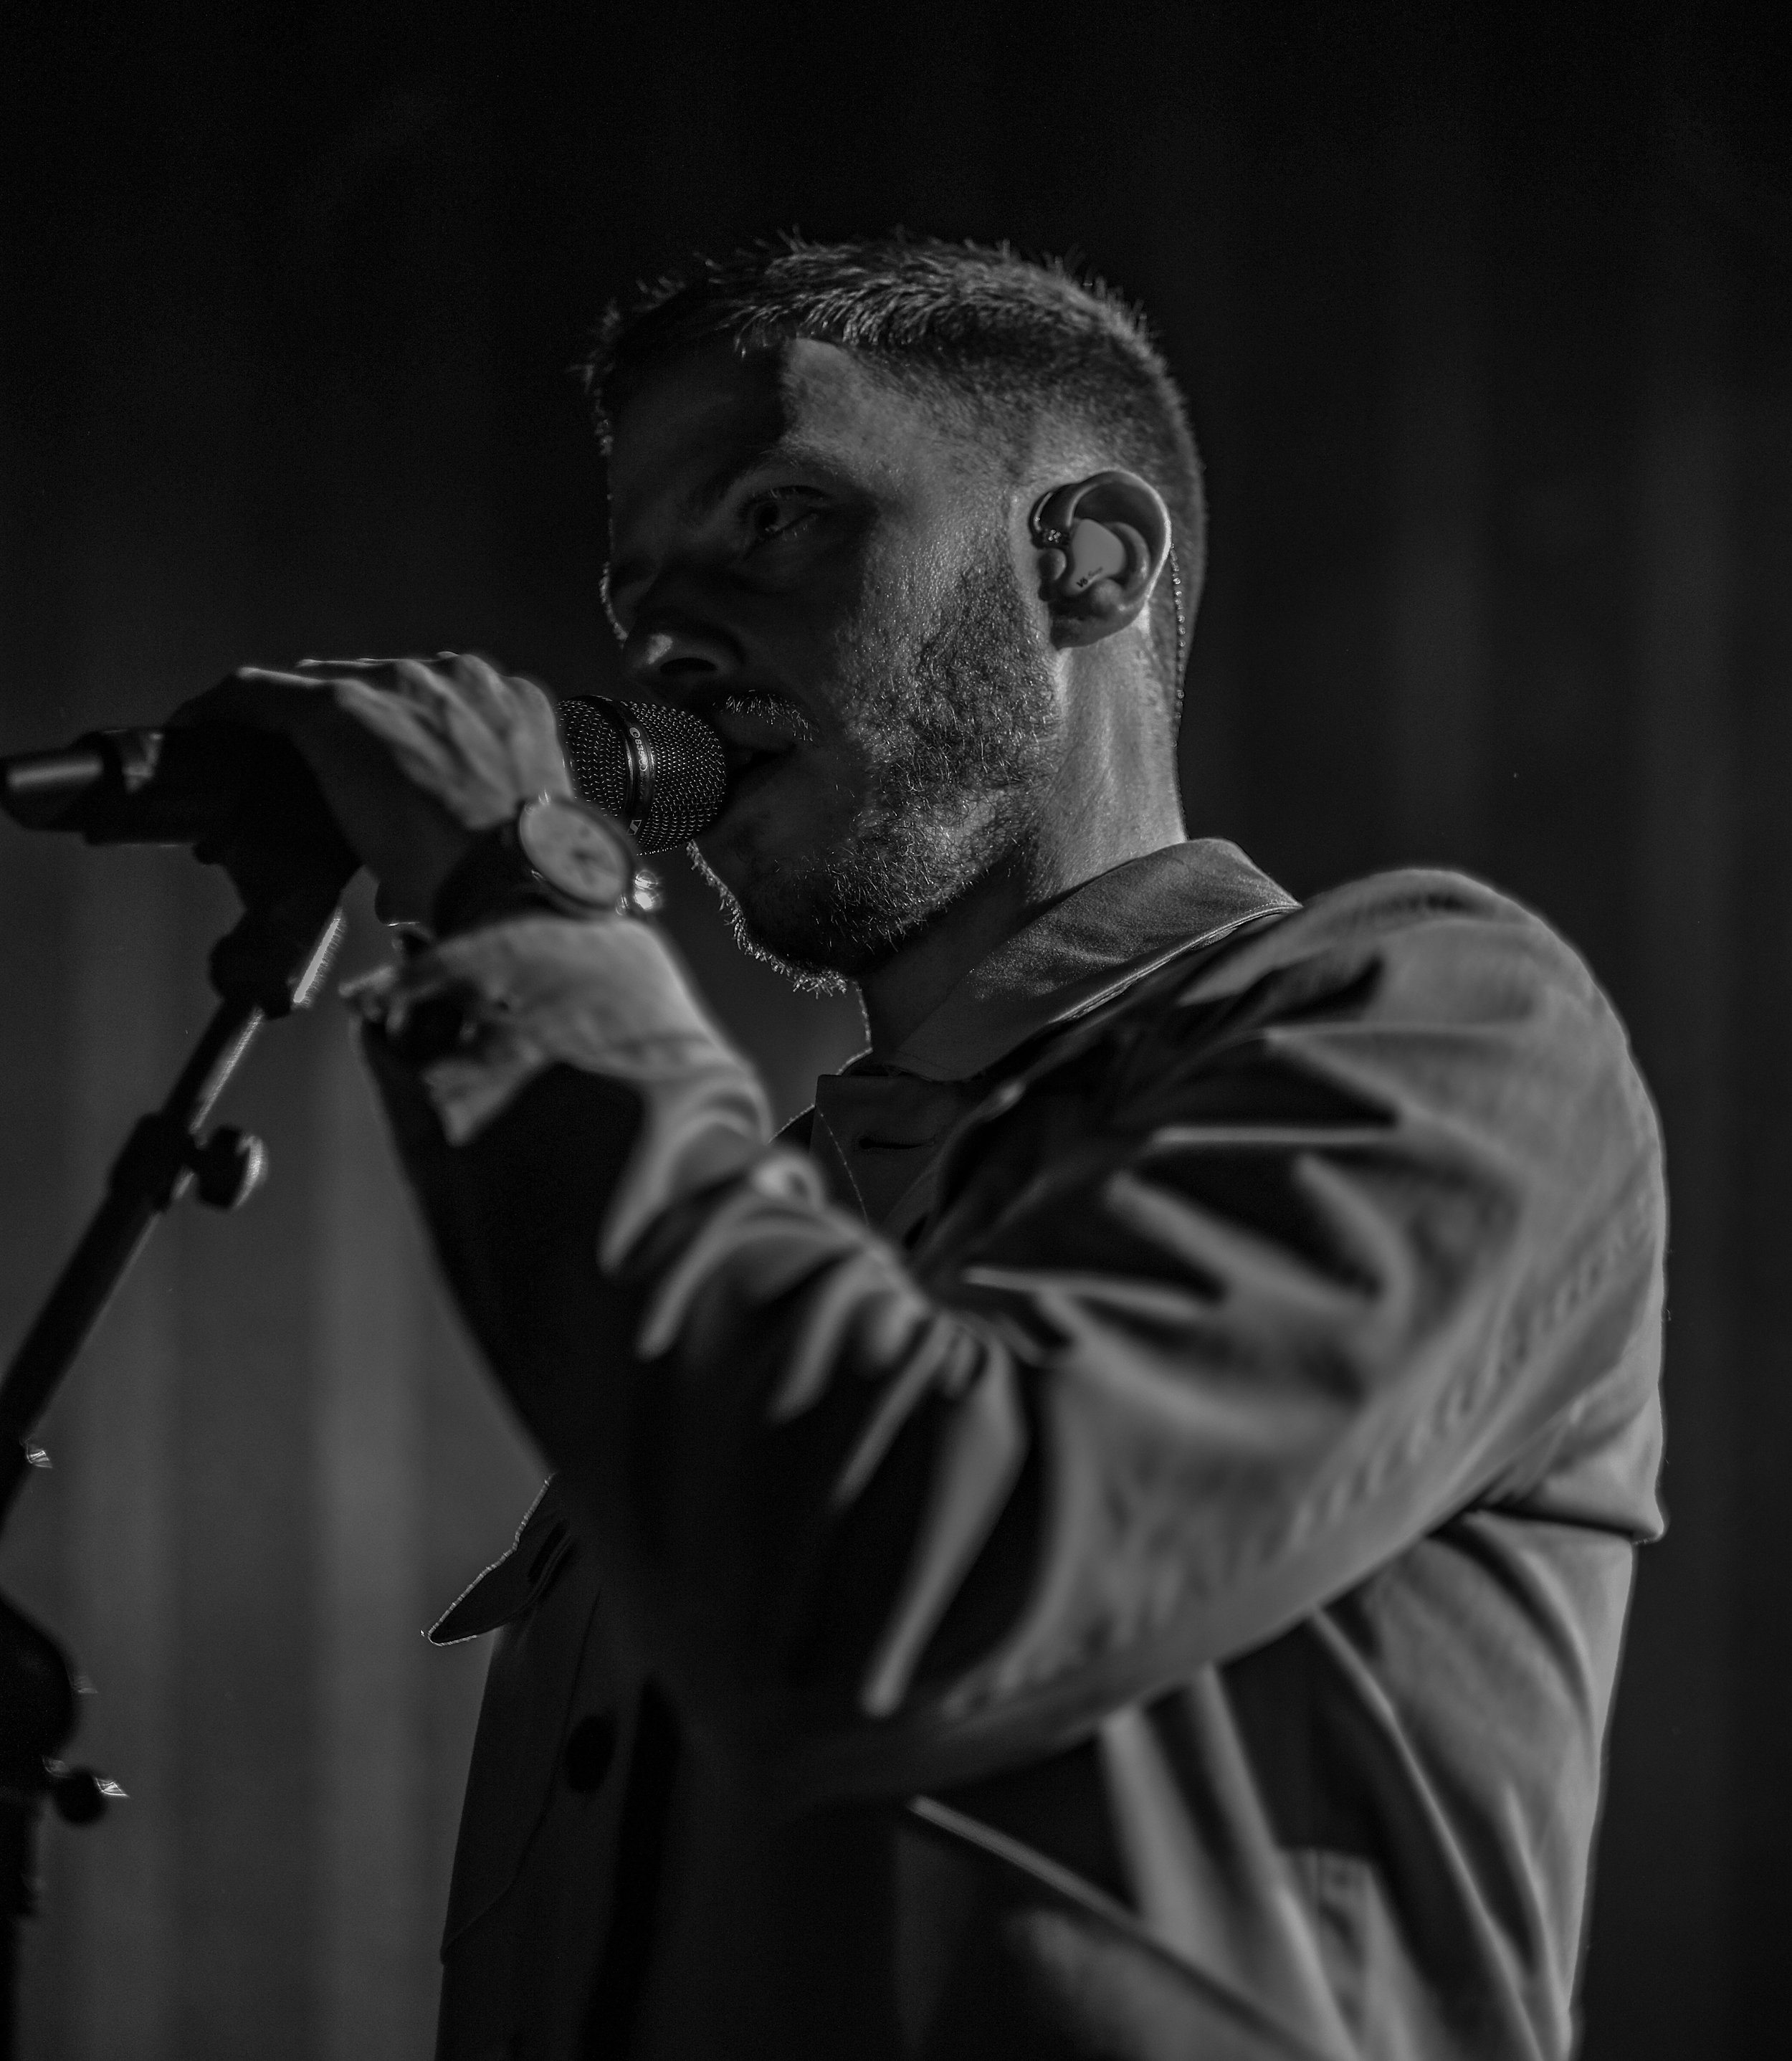 Nick Brewer performing at Hoxton Square in London, 2019. Photo by  Misan Harriman .